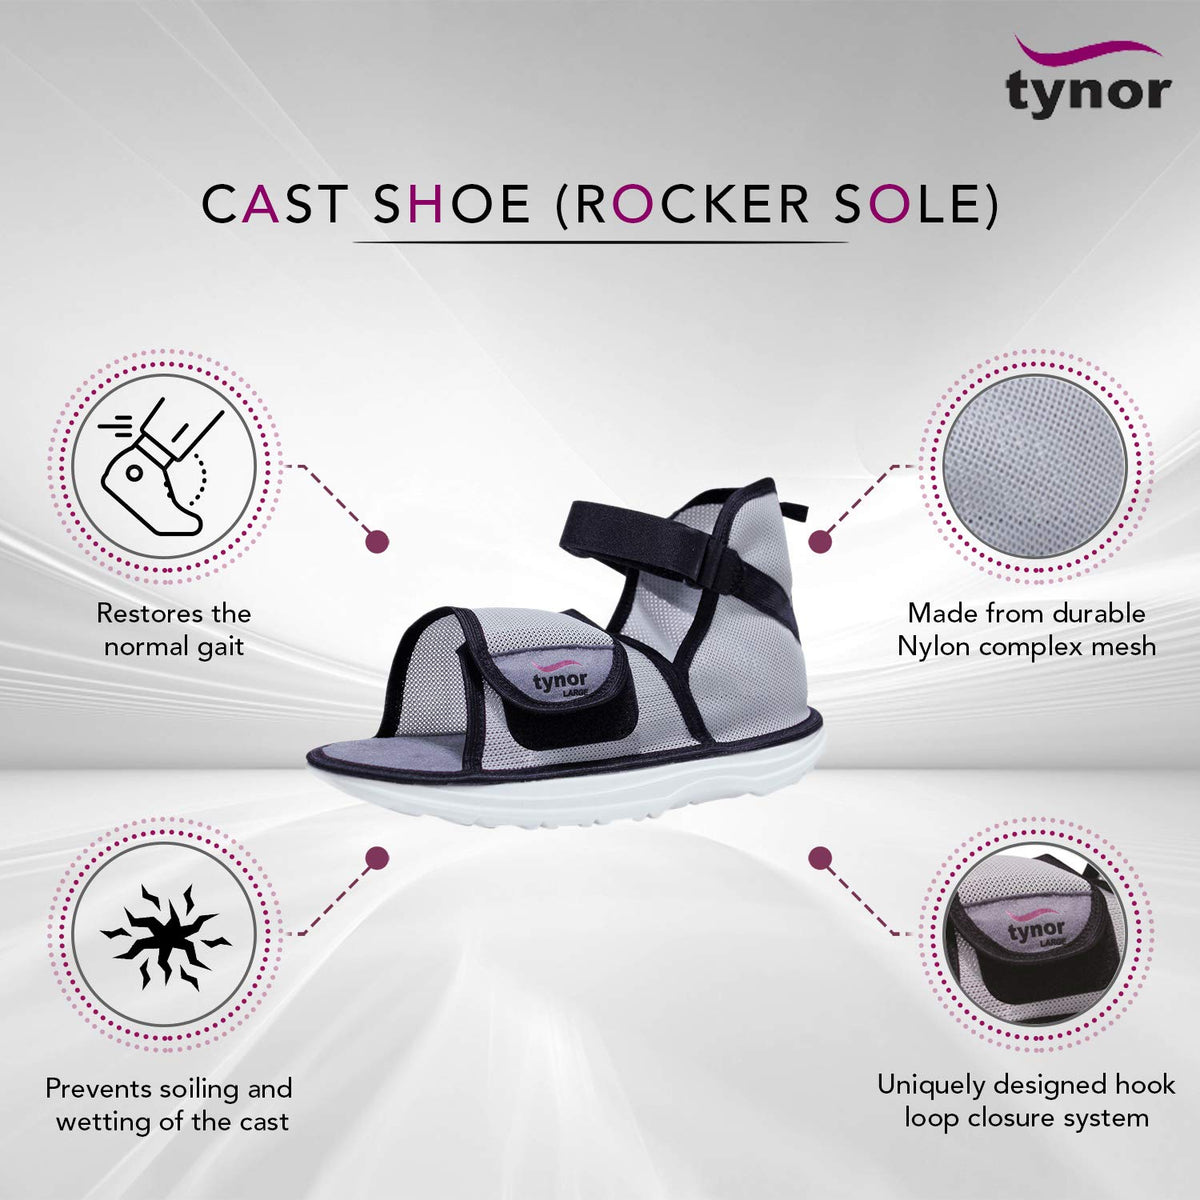 Cast Shoe (Rocker Sole)